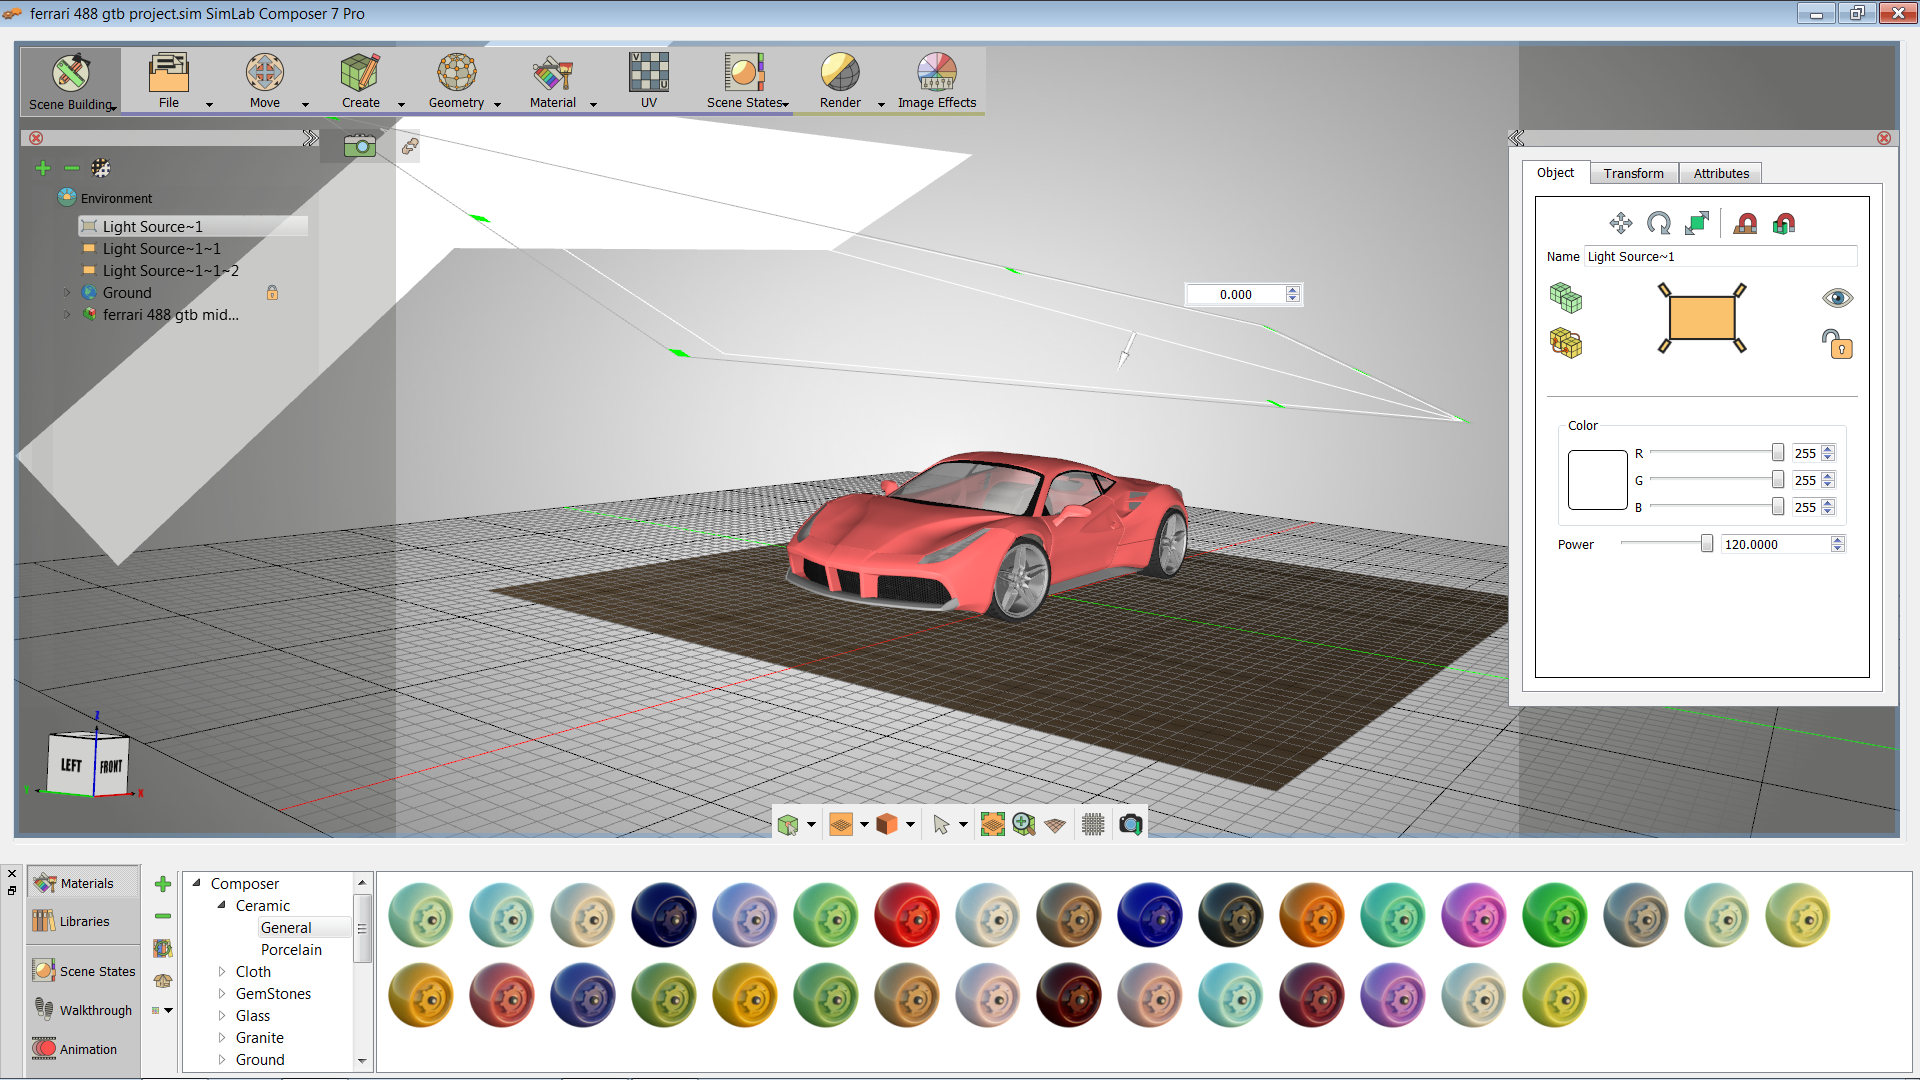 simlab composer 7 rendering_studio_settings.jpg